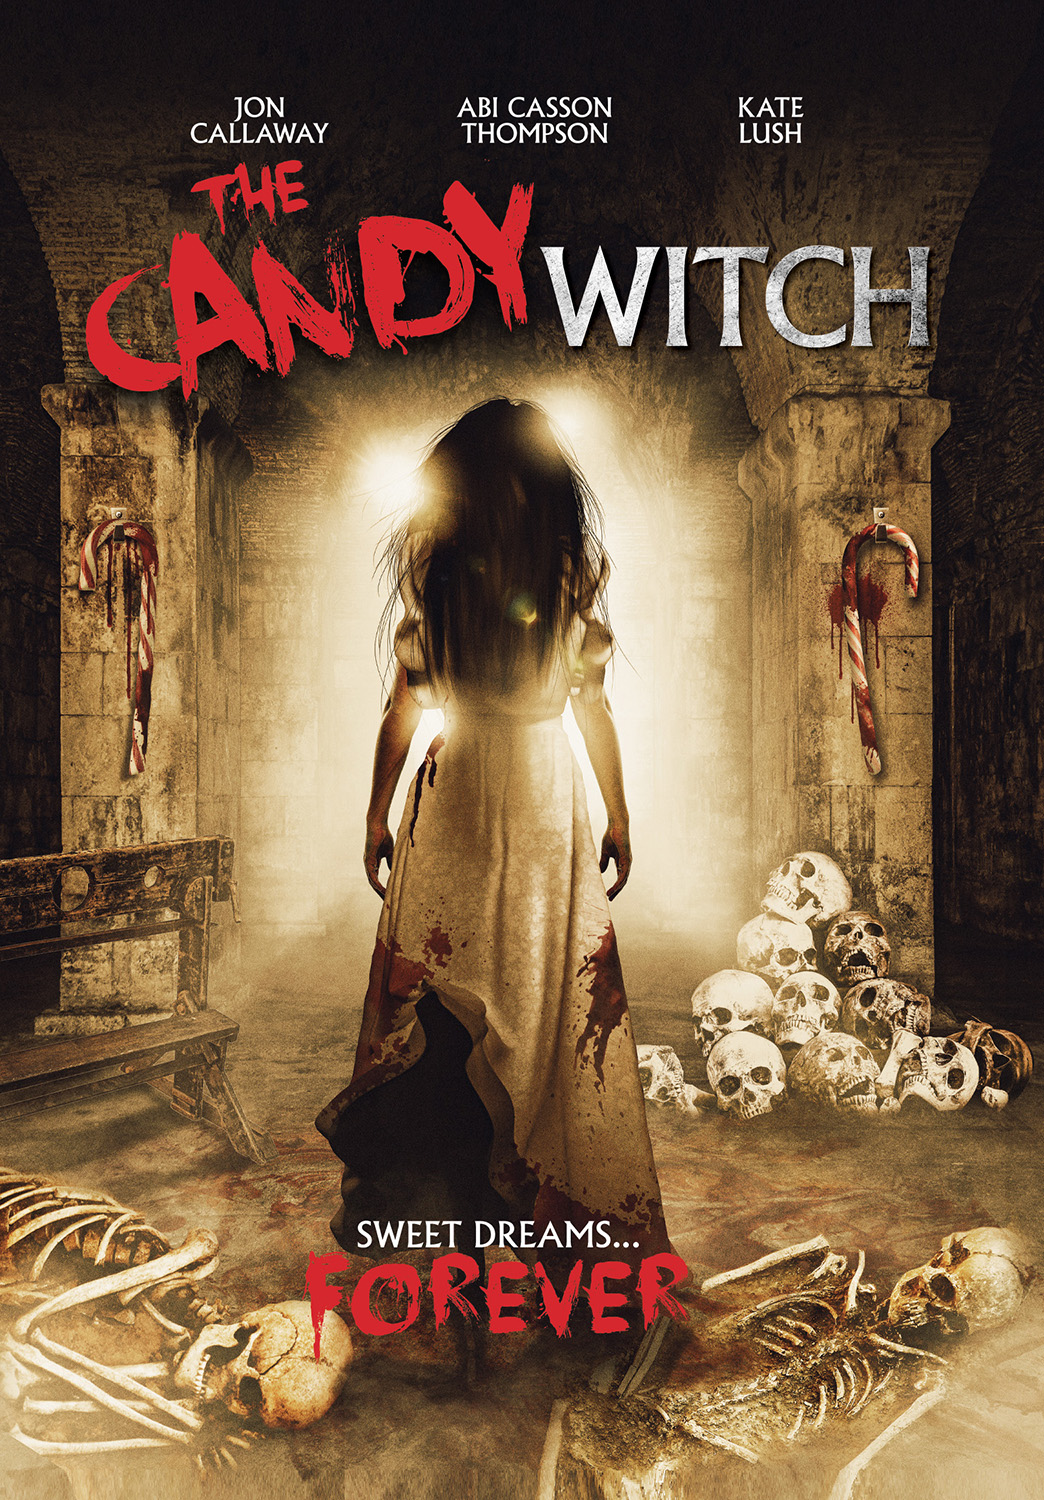 The Candy Witch Key Art